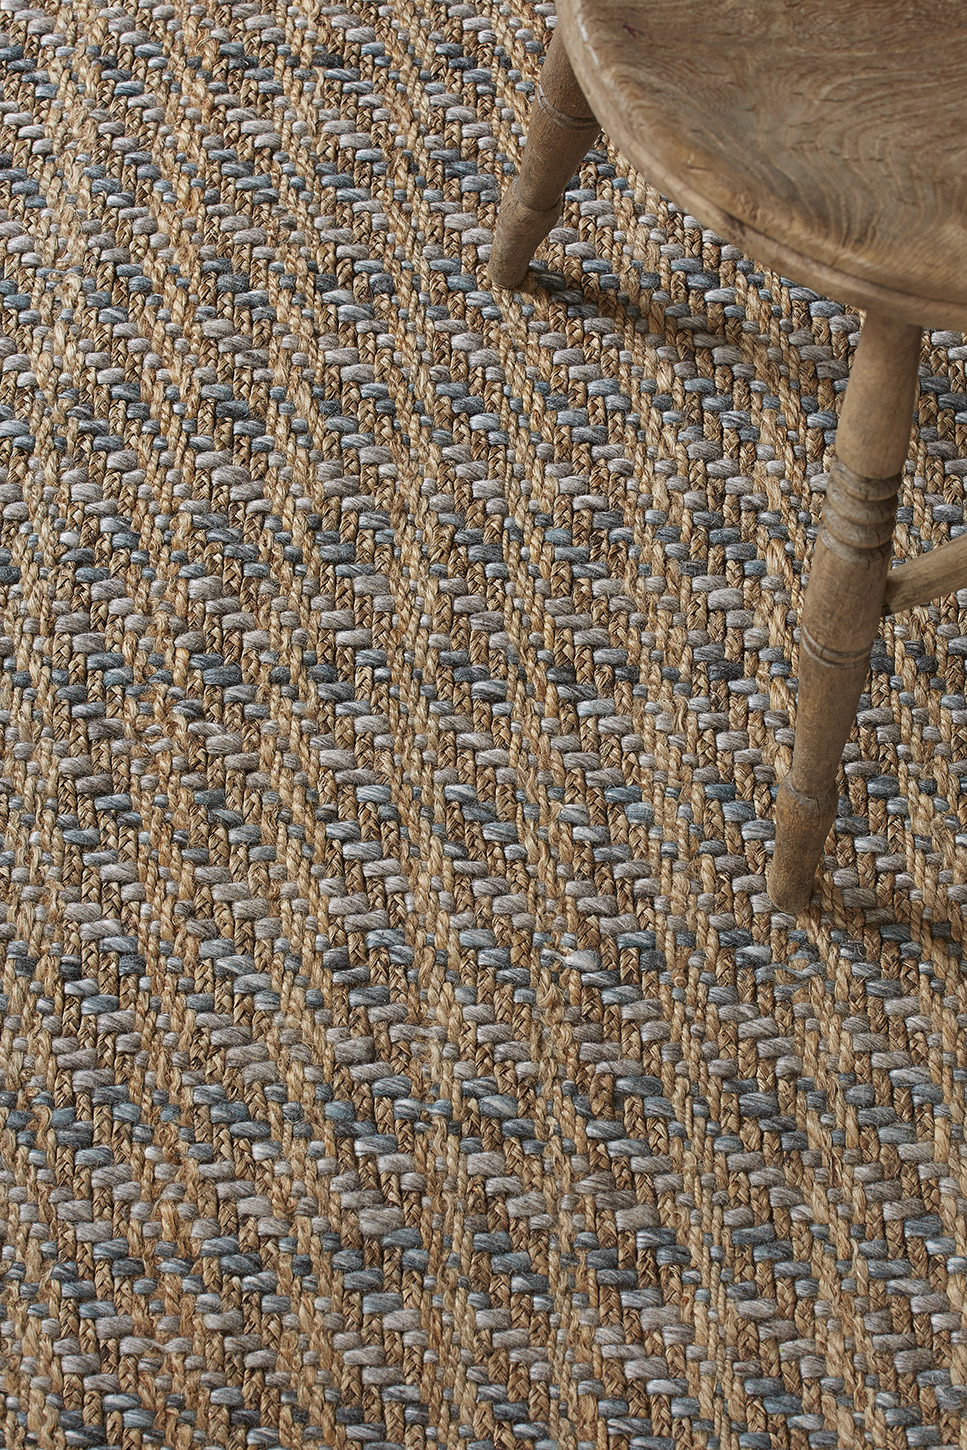 flock-living-limited-products-handmade-luxury-gaia-wool-ora-1